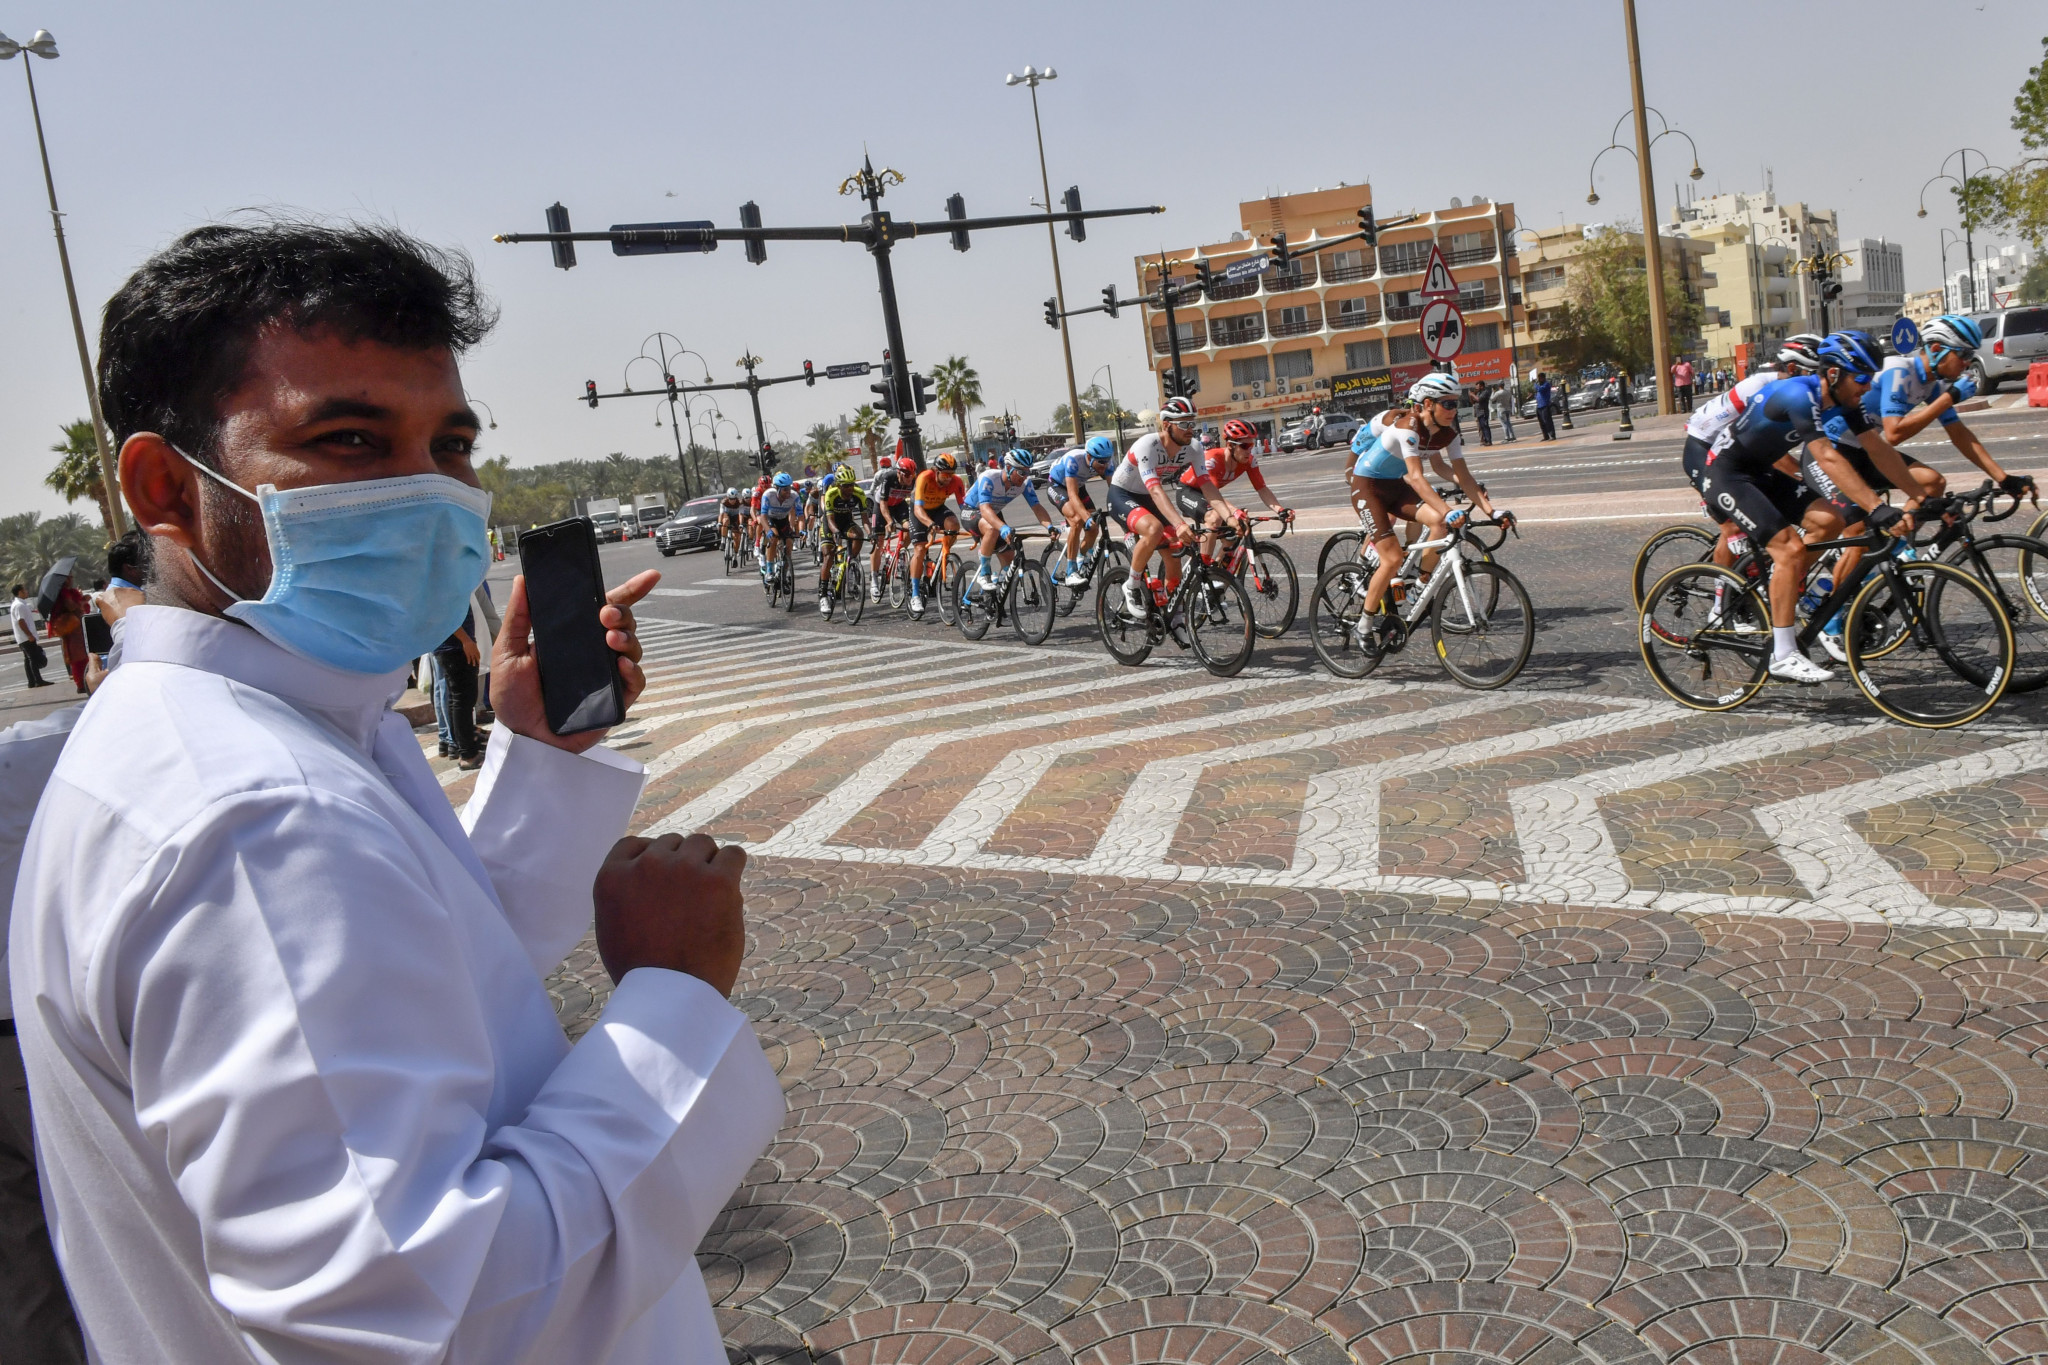 The UAE Tour has been cancelled after two staff members at one of the competing teams were found to have coronavirus ©Getty Images